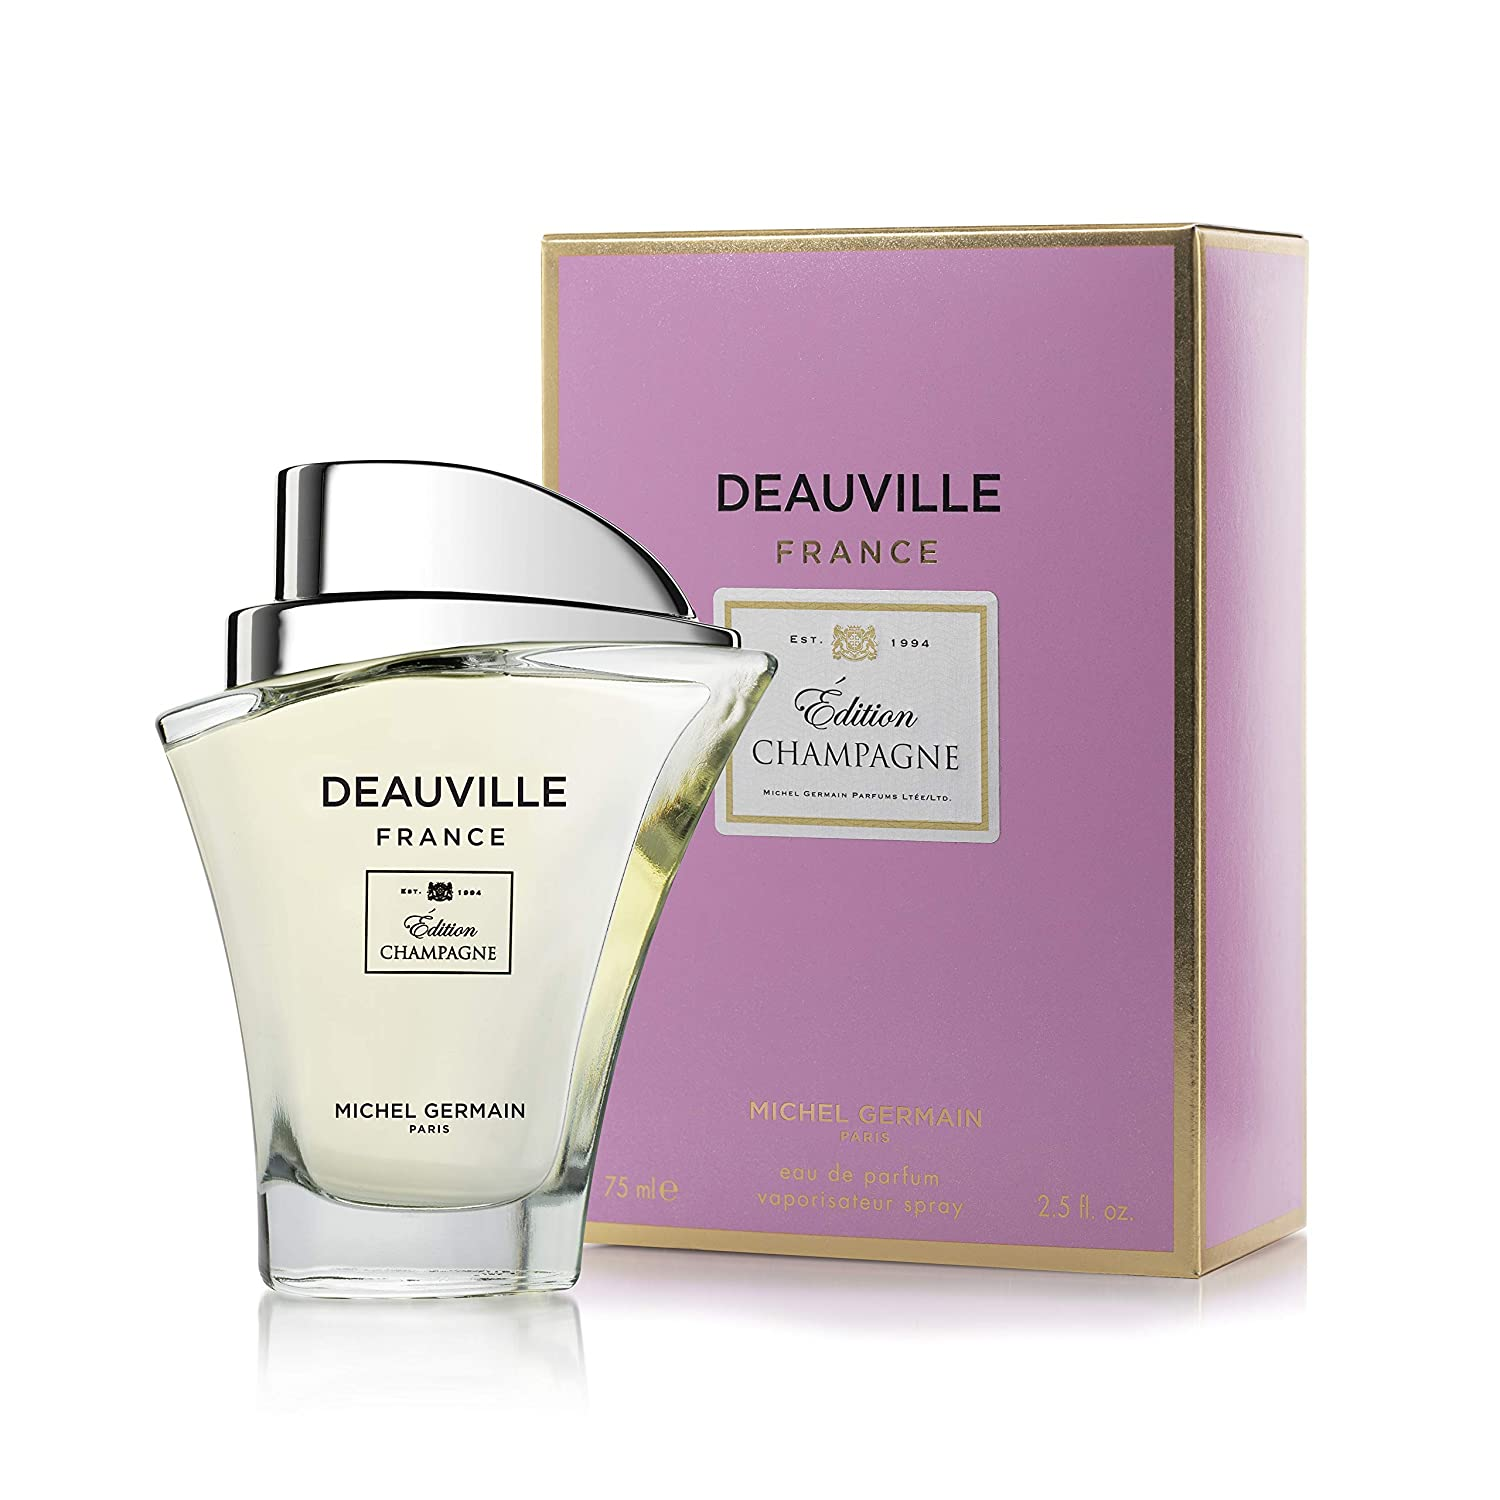 Michel Germain Deauville Max 72% OFF Men's Direct sale of manufacturer Women's and Perfume Cologne